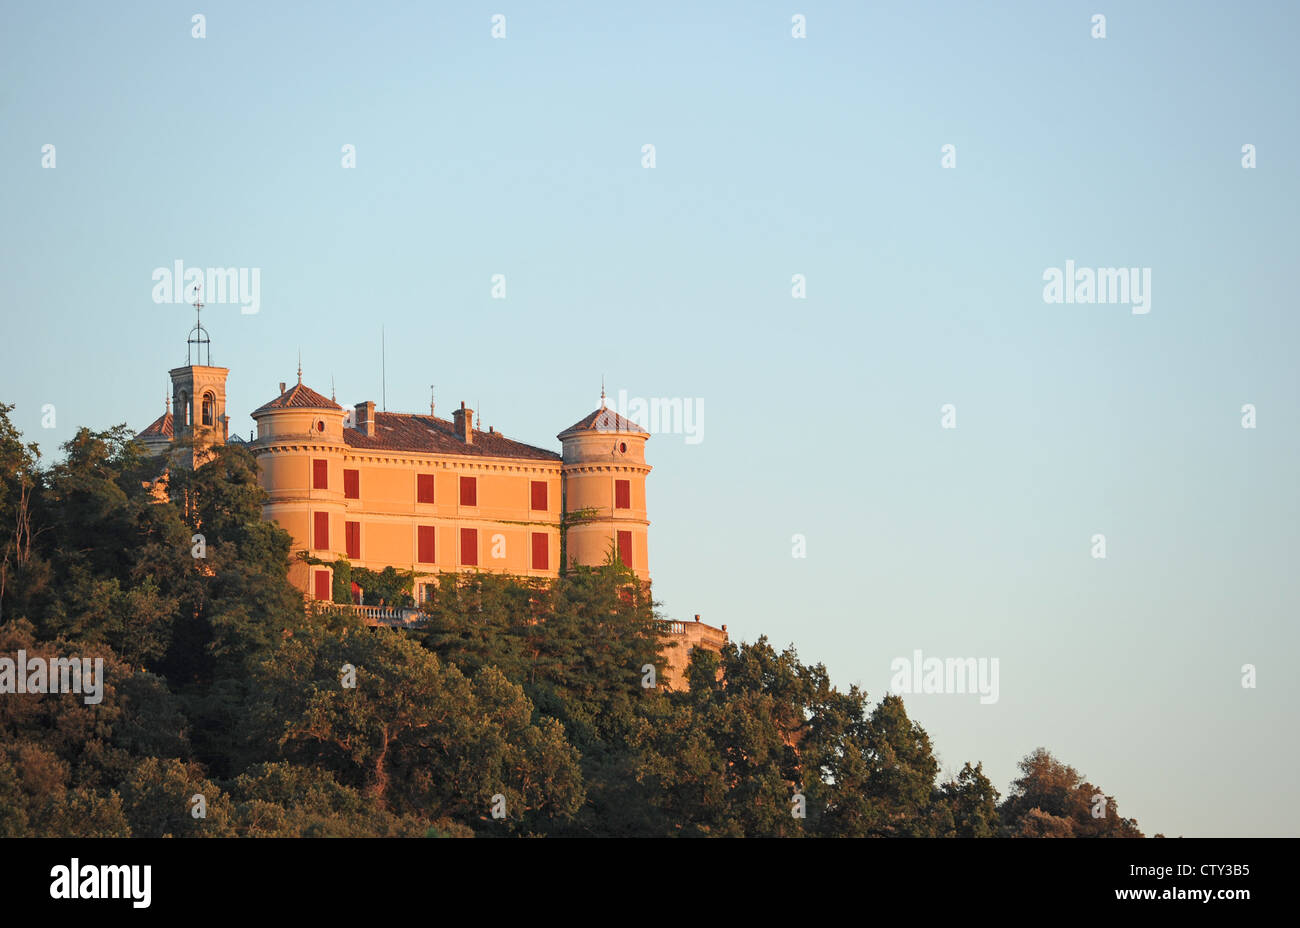 View of the chateau in Allemagne-en-Provence, a landmark of gothic architecture in Provence, southern France. - Stock Image